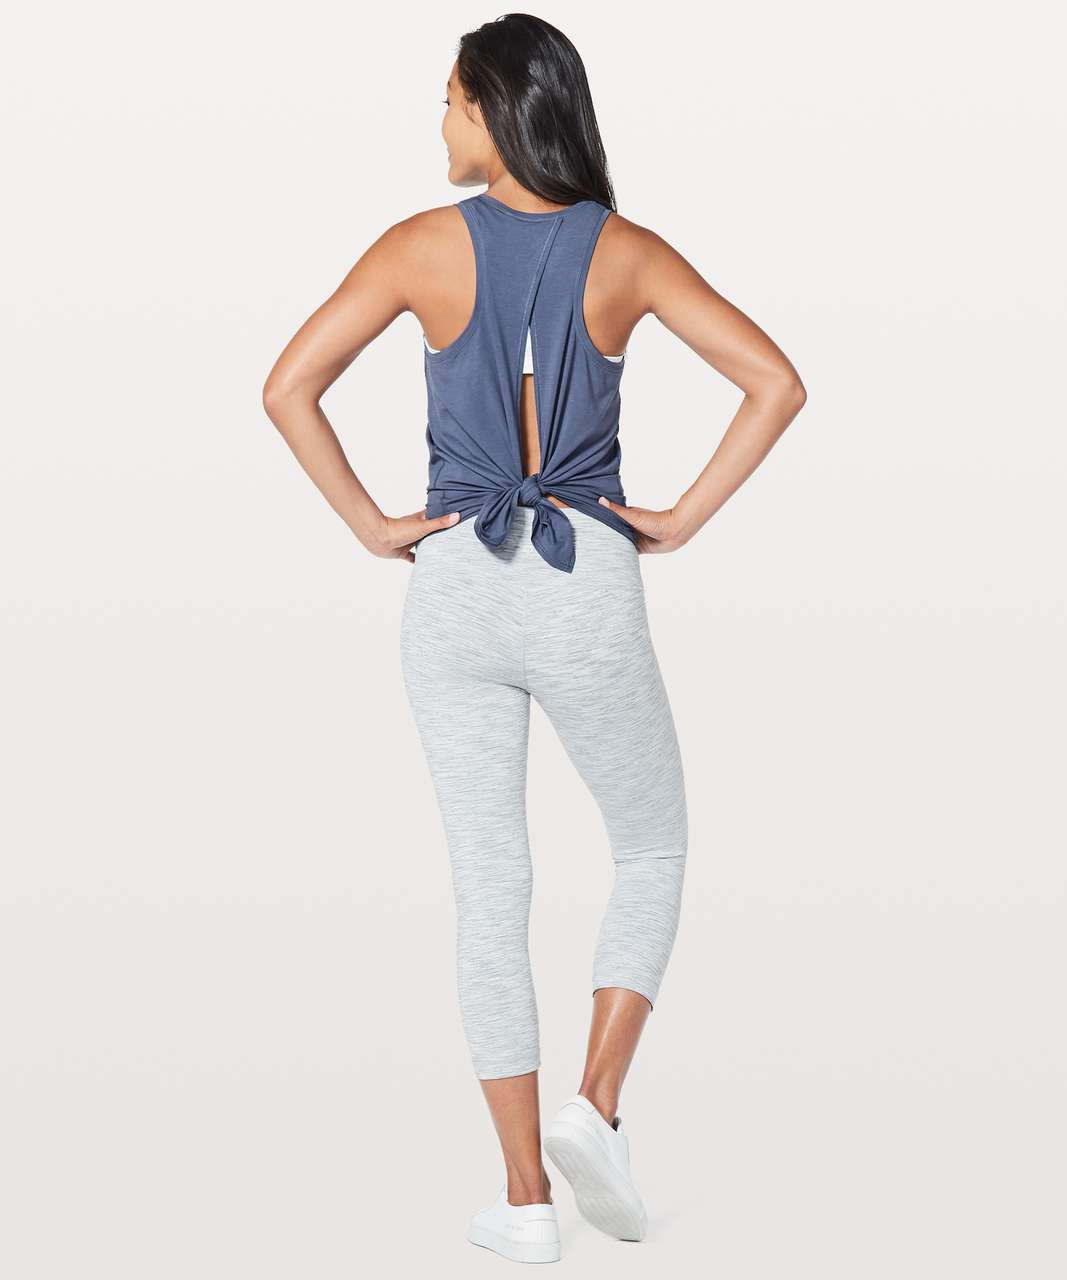 Lululemon All Tied Up Tank - Moody Blues